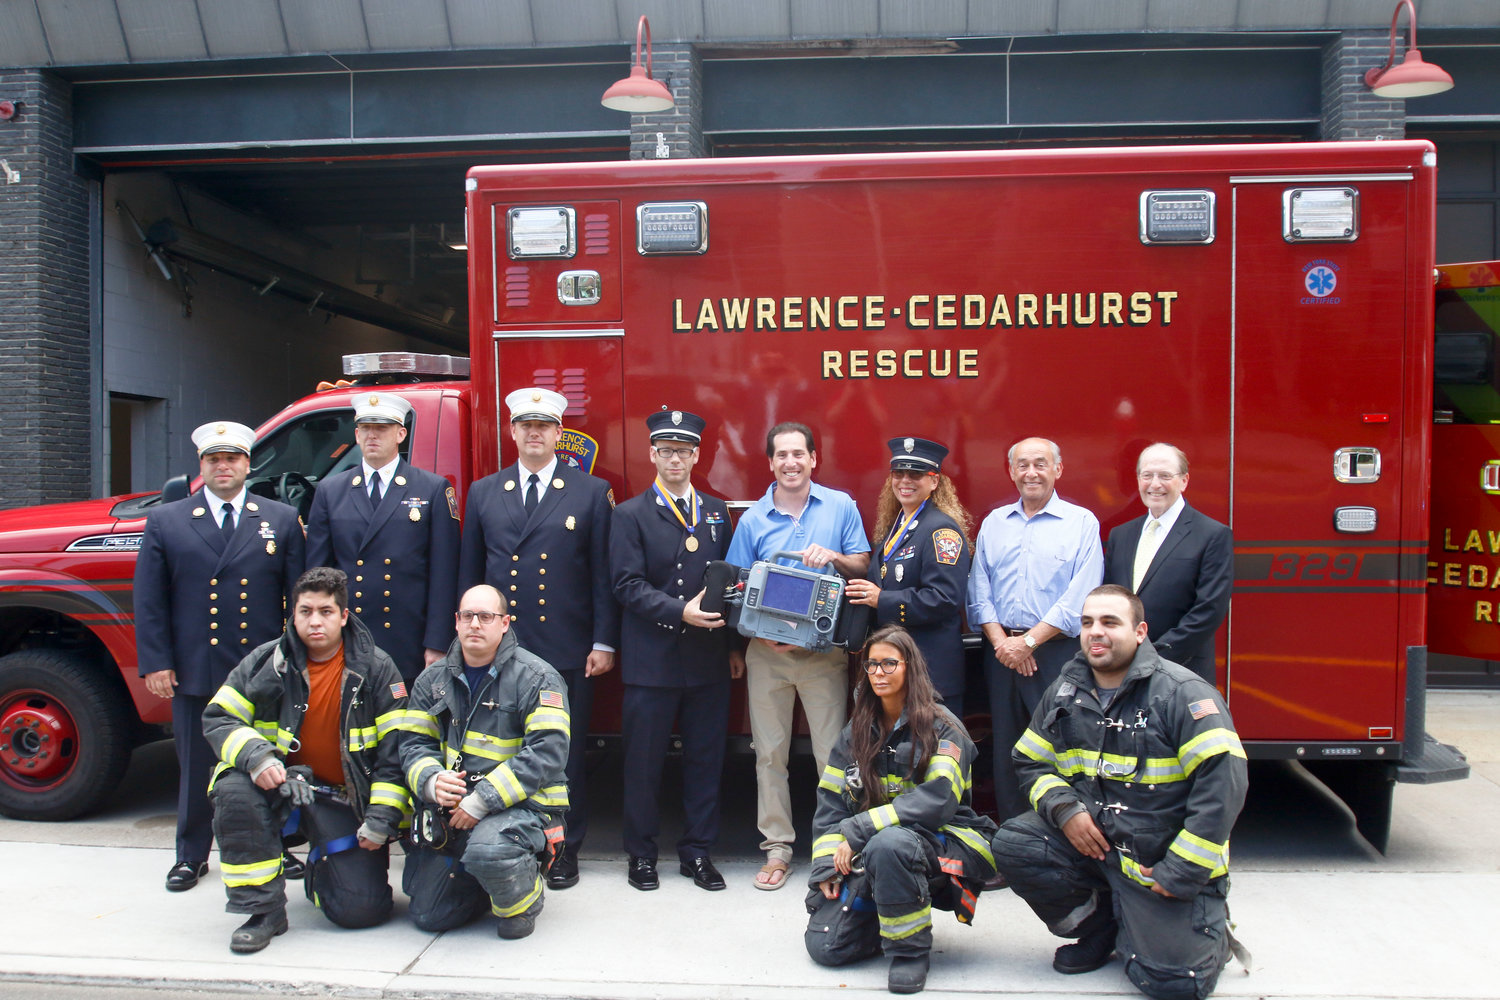 Life-saving equipment, including a new ambulance were dedicated by the Lawrence Cedarhurst Fire Department. State Sen. Todd Kaminsky held the defibrillator flanked by Liberty Medal recipients Meyer Adler and Shoshana Weiner. On the far right was Cedarhurst Mayor Benjamin Weinstock and second from right Lawrence Mayor Alex Edelman.